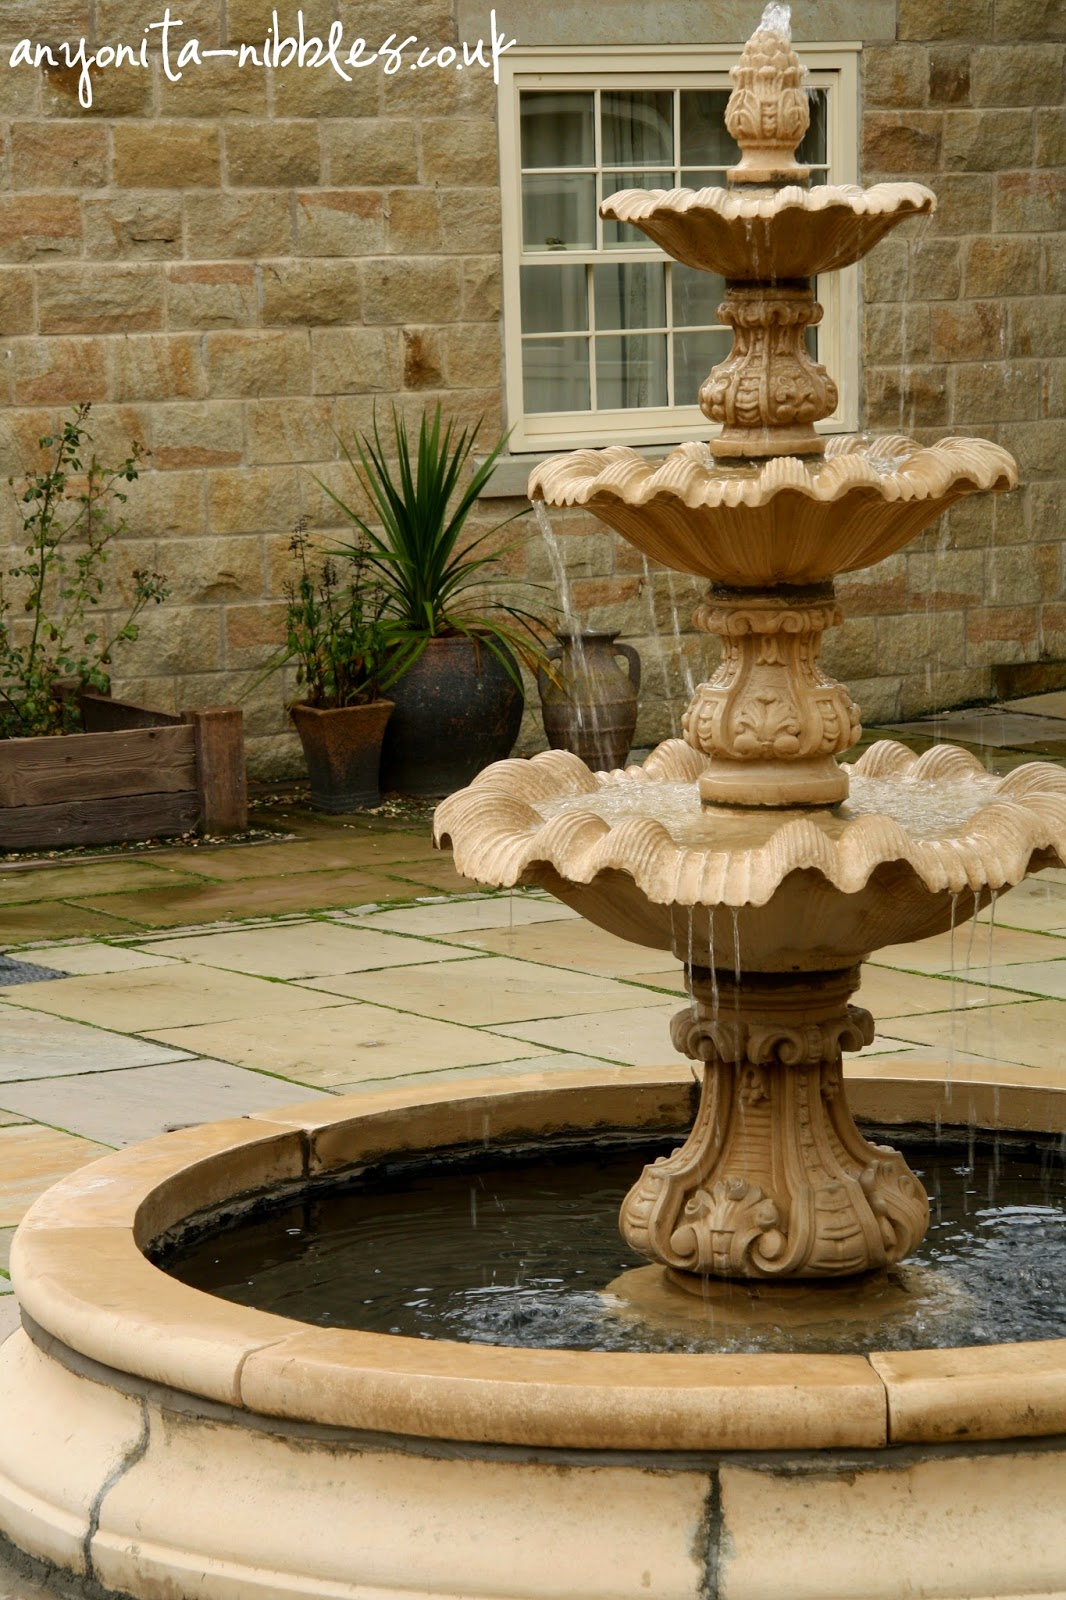 Fountains in the courtyard of Ox Pasture Hall Hotel | Anyonita-nibbles.co.uk